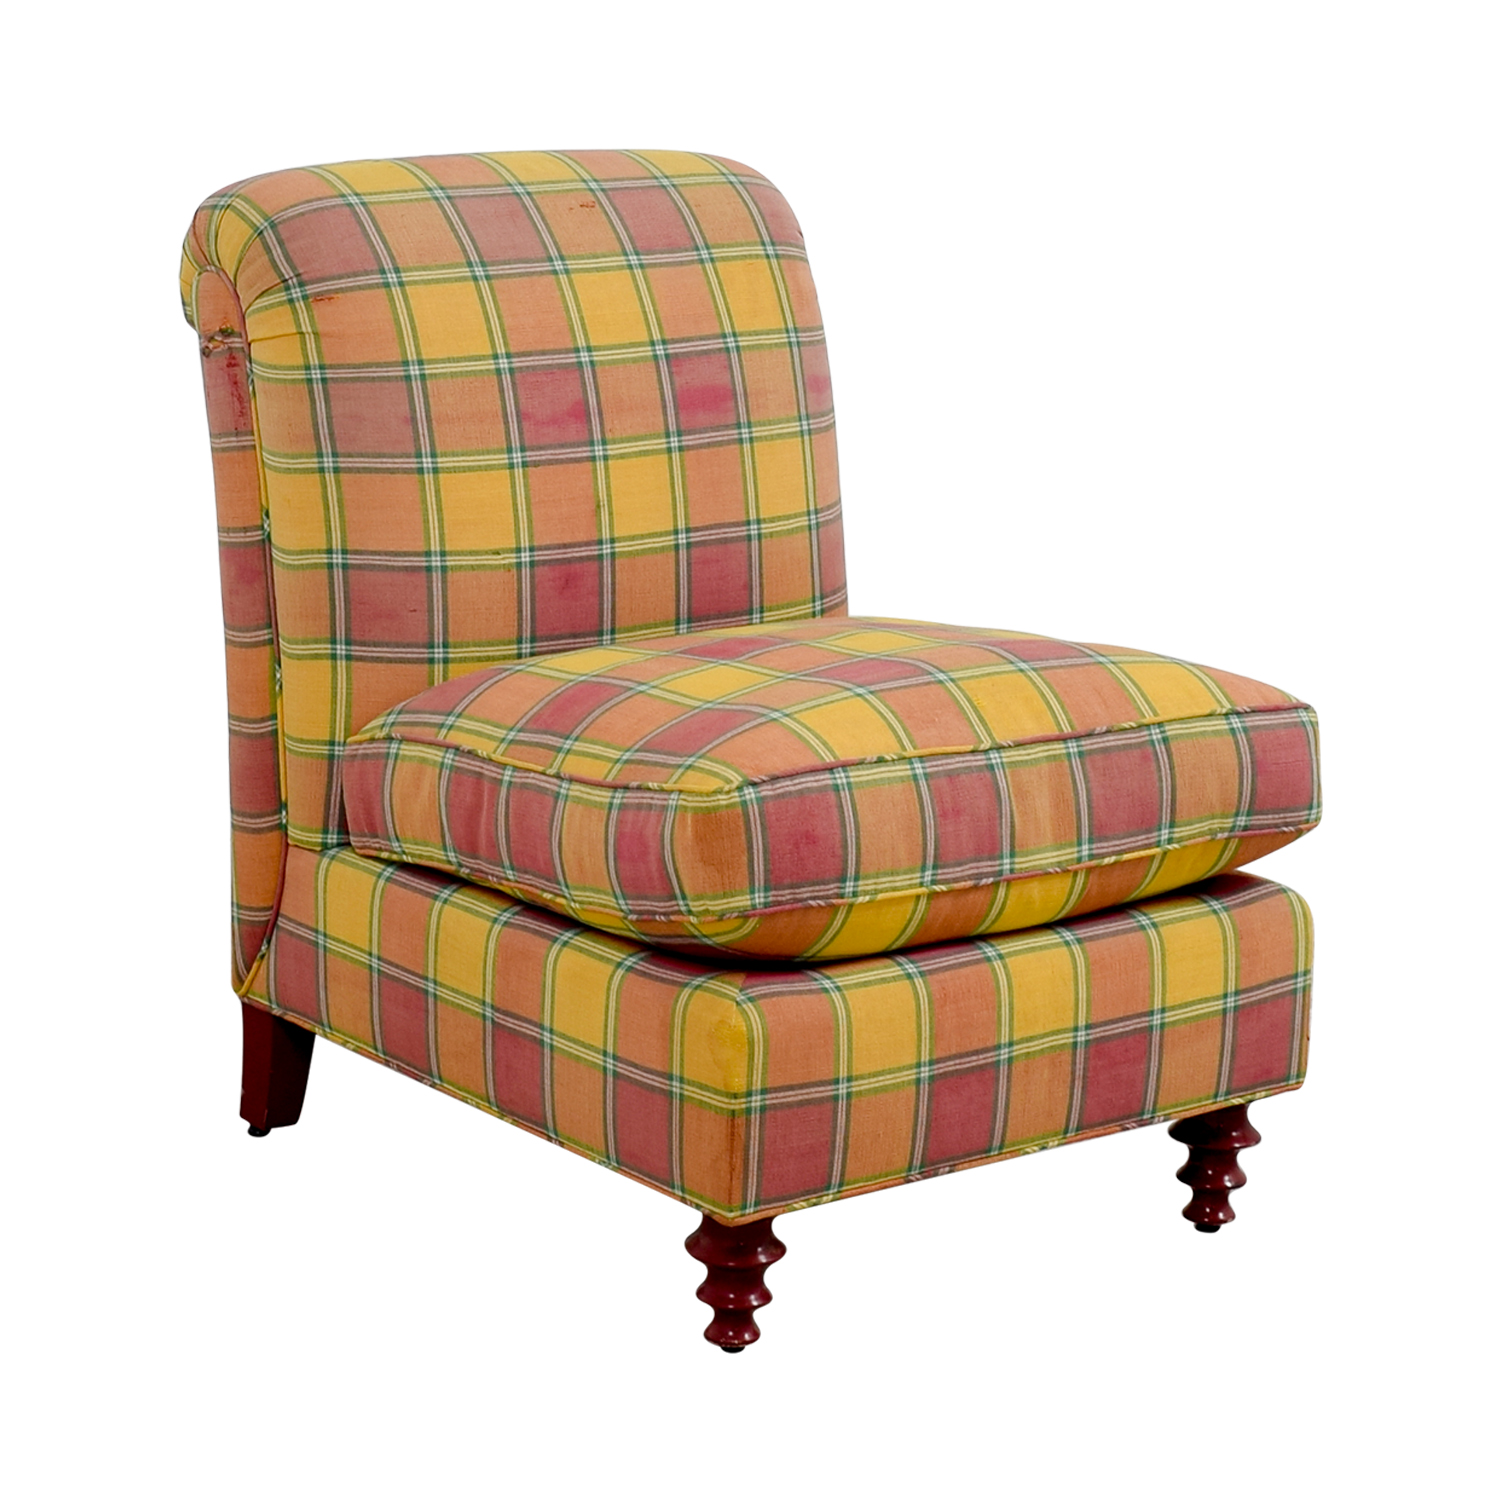 Superieur ... Buy Furniture Masters Red And Yellow Plaid Accent Chair Furniture  Masters Chairs ...